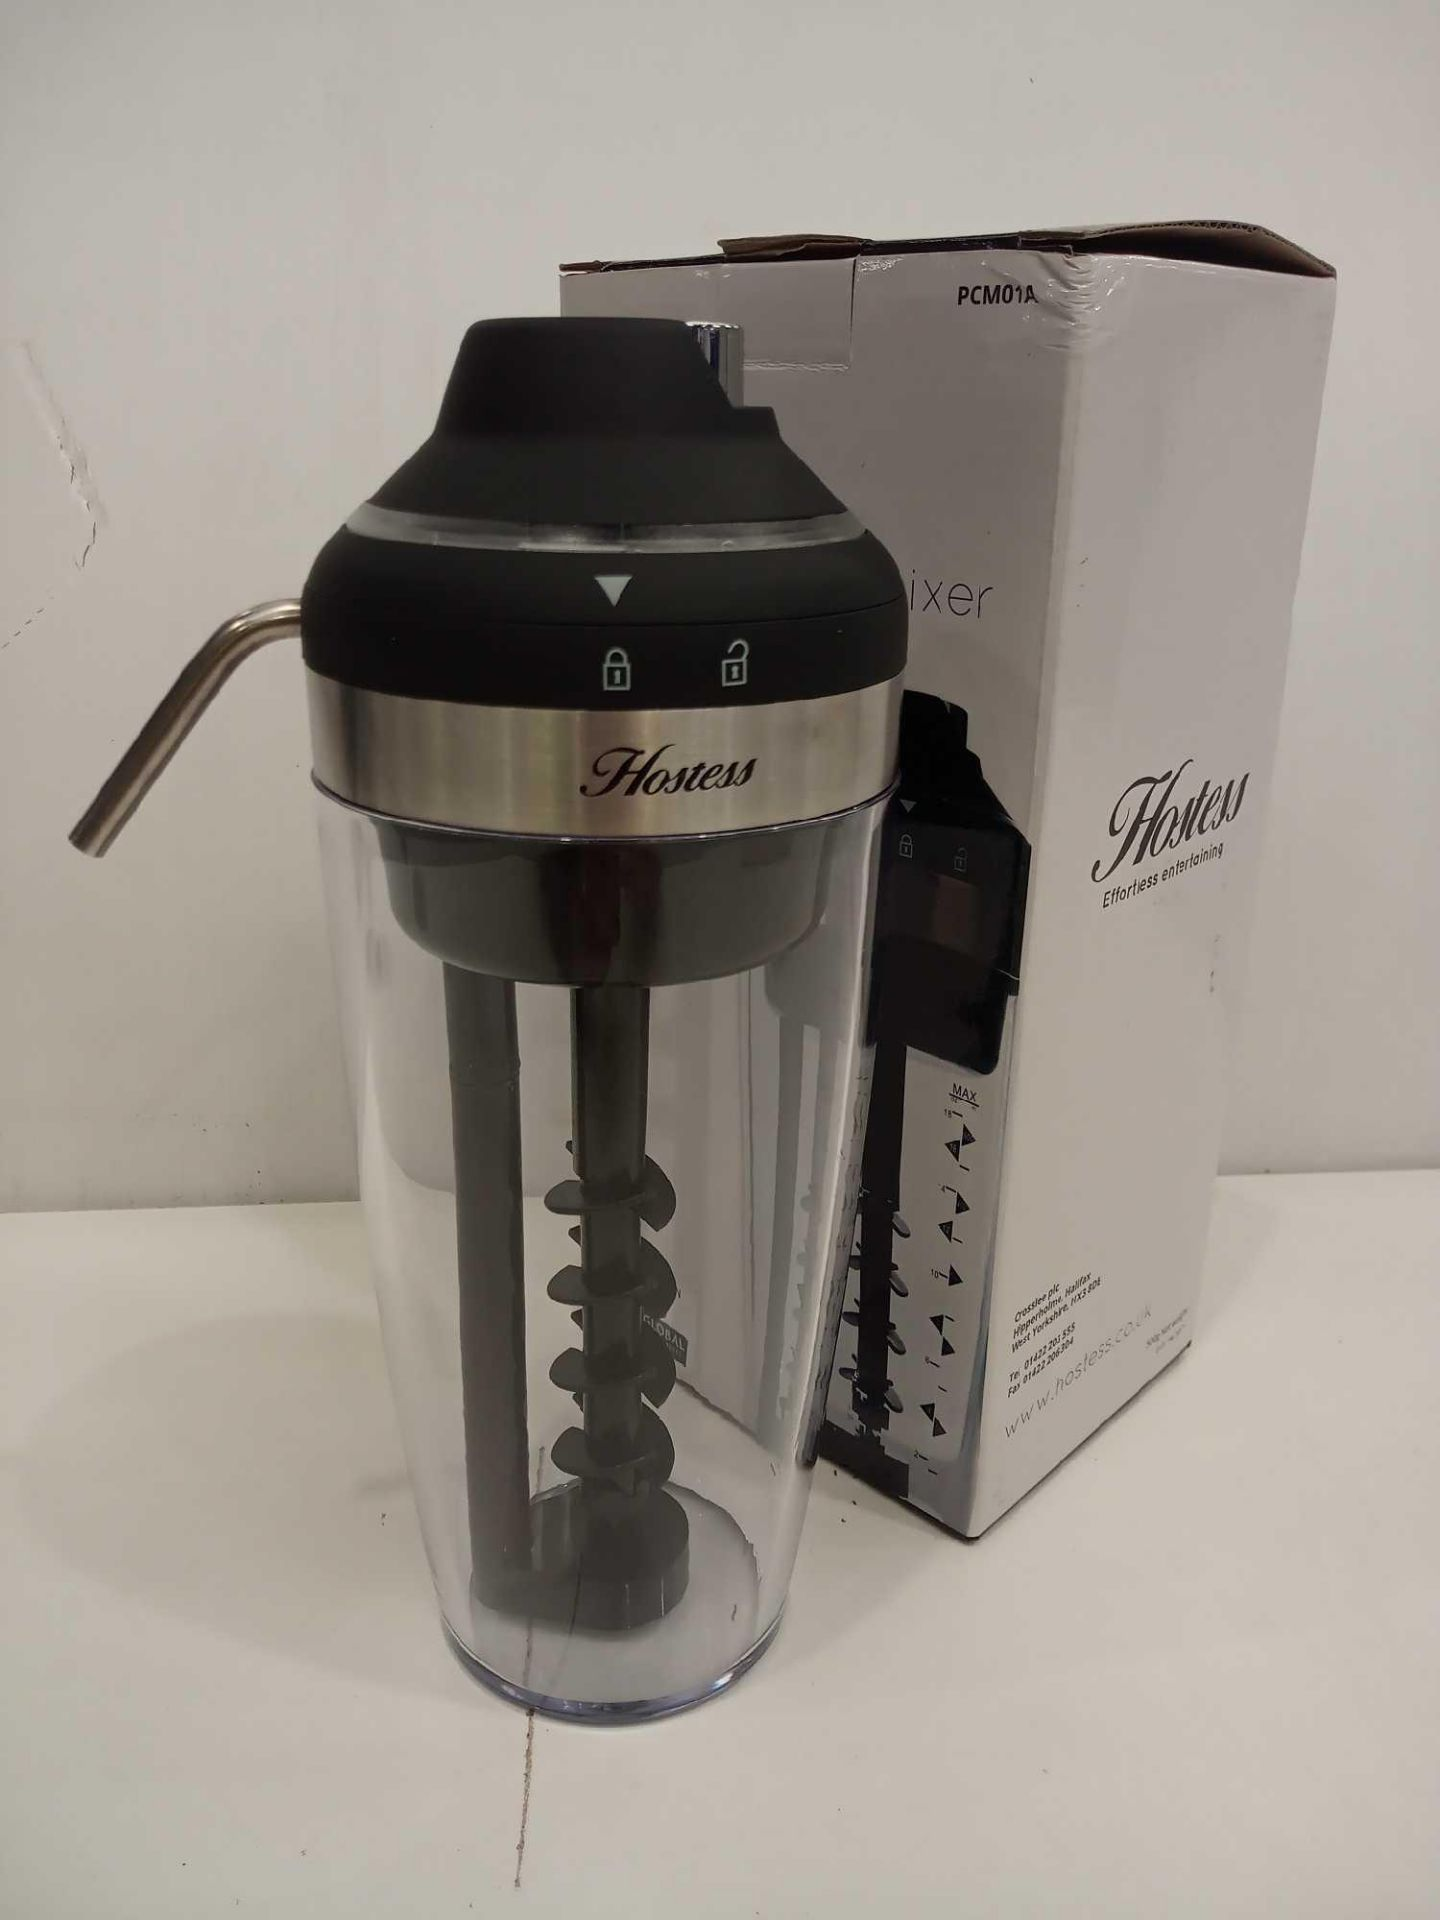 Lot 776 - Rrp £30 Boxed Hostess Pump Cocktail Mixer